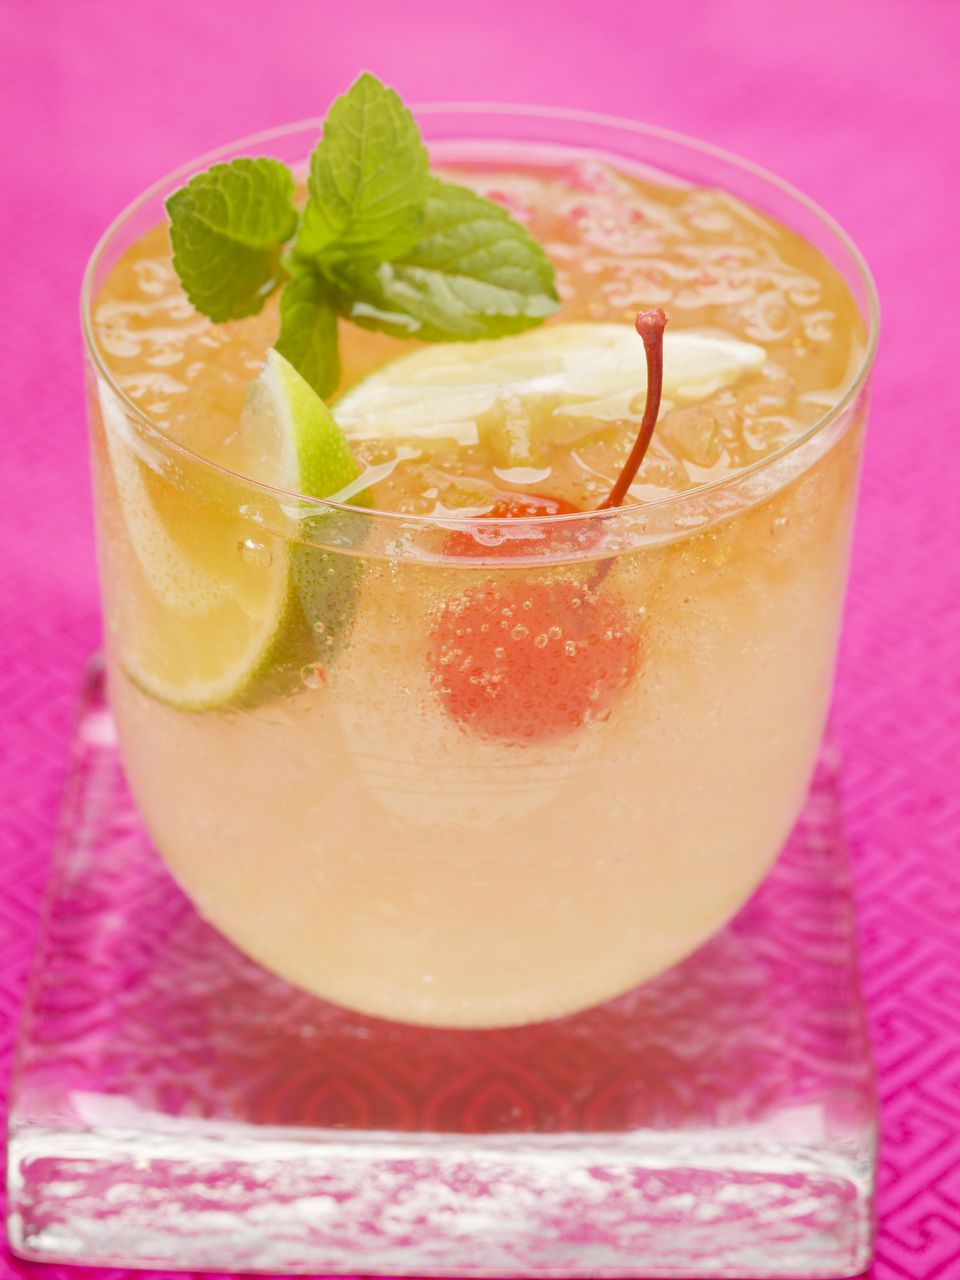 Classic Apricot Sour Cocktail with a Cherry, Lime, and Mint